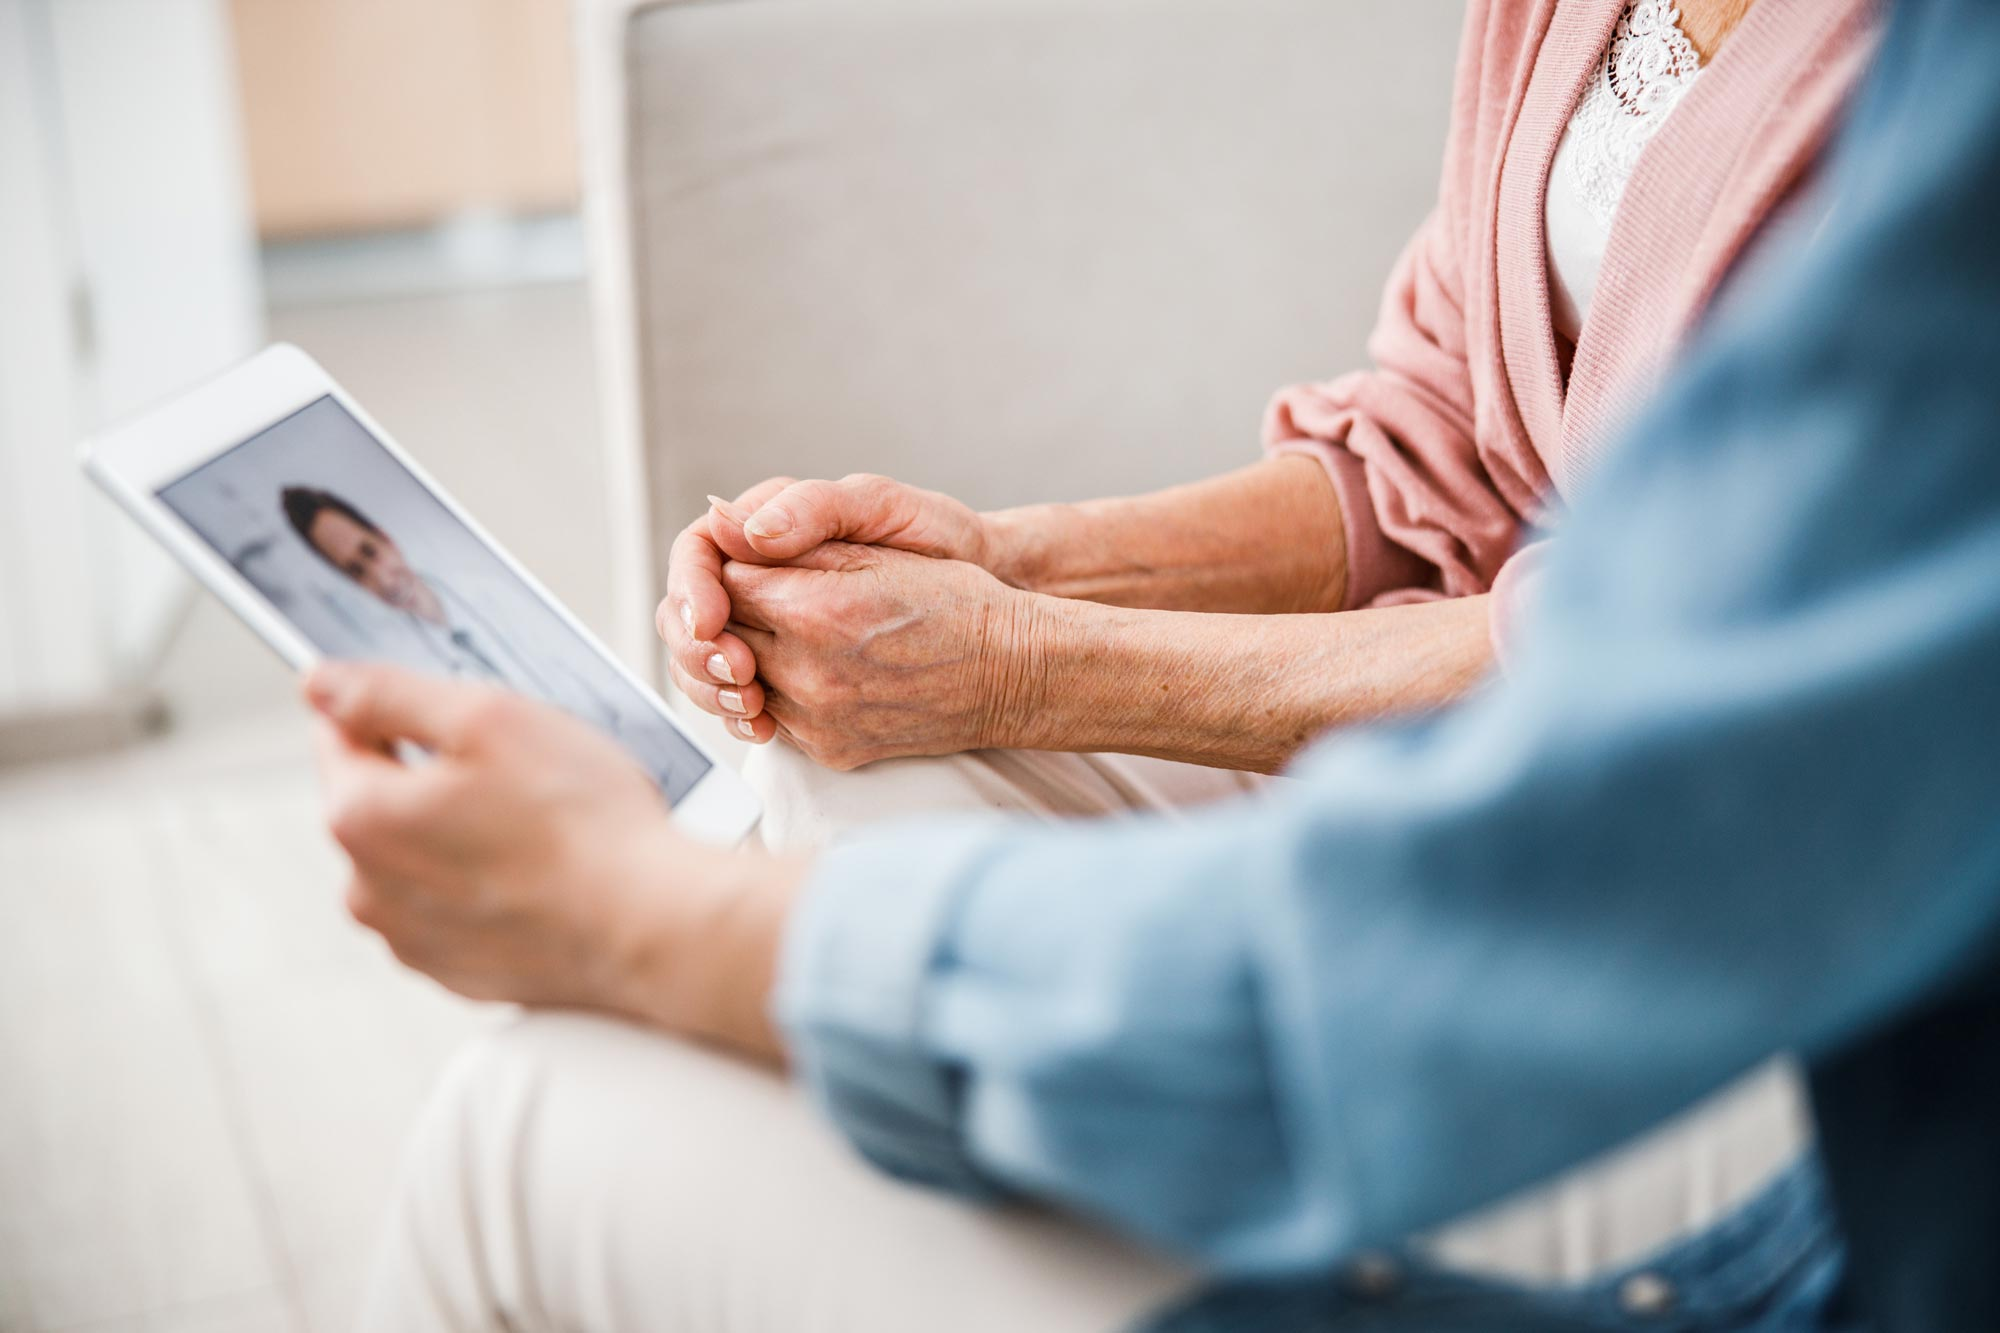 elderly female and male patient experience telemedicine with male doctor on iPad tablet